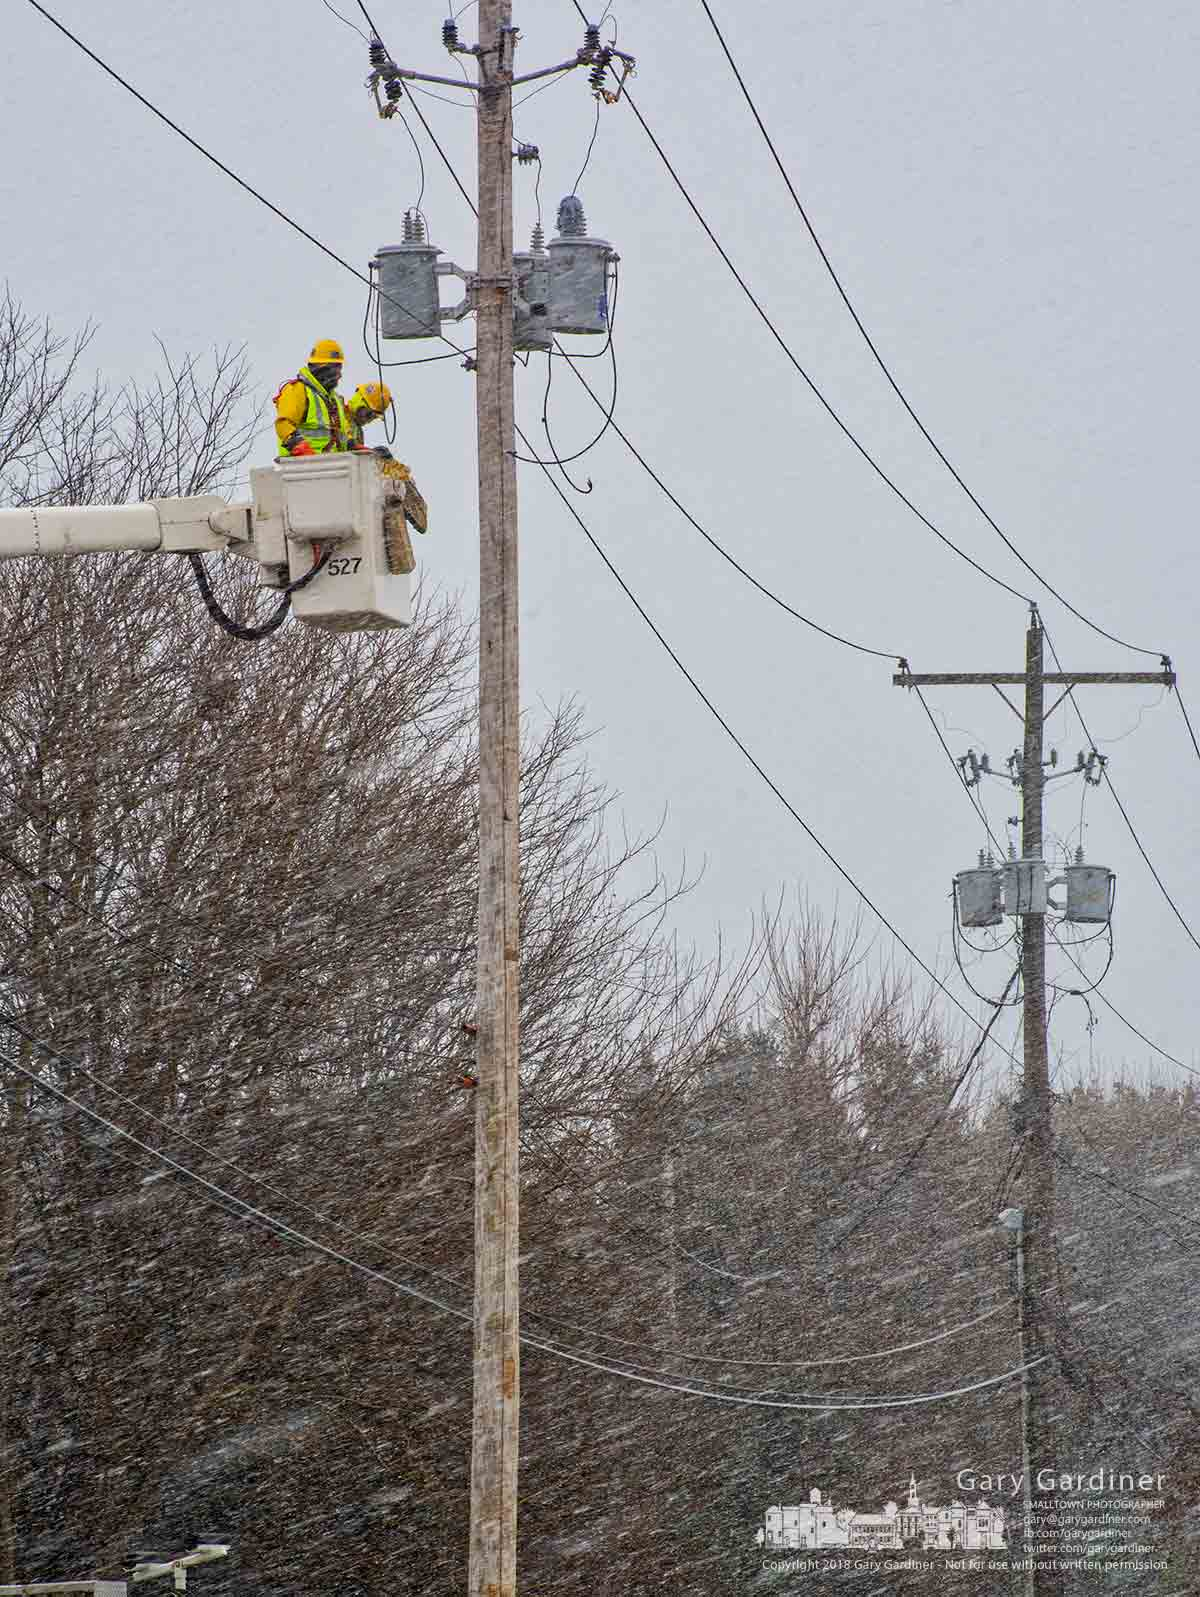 City electric workers work through a heavy snow squall to prepare a new set of transformers for power along Huber Village near State Street. My Final Photo for Nov. 29, 2018.